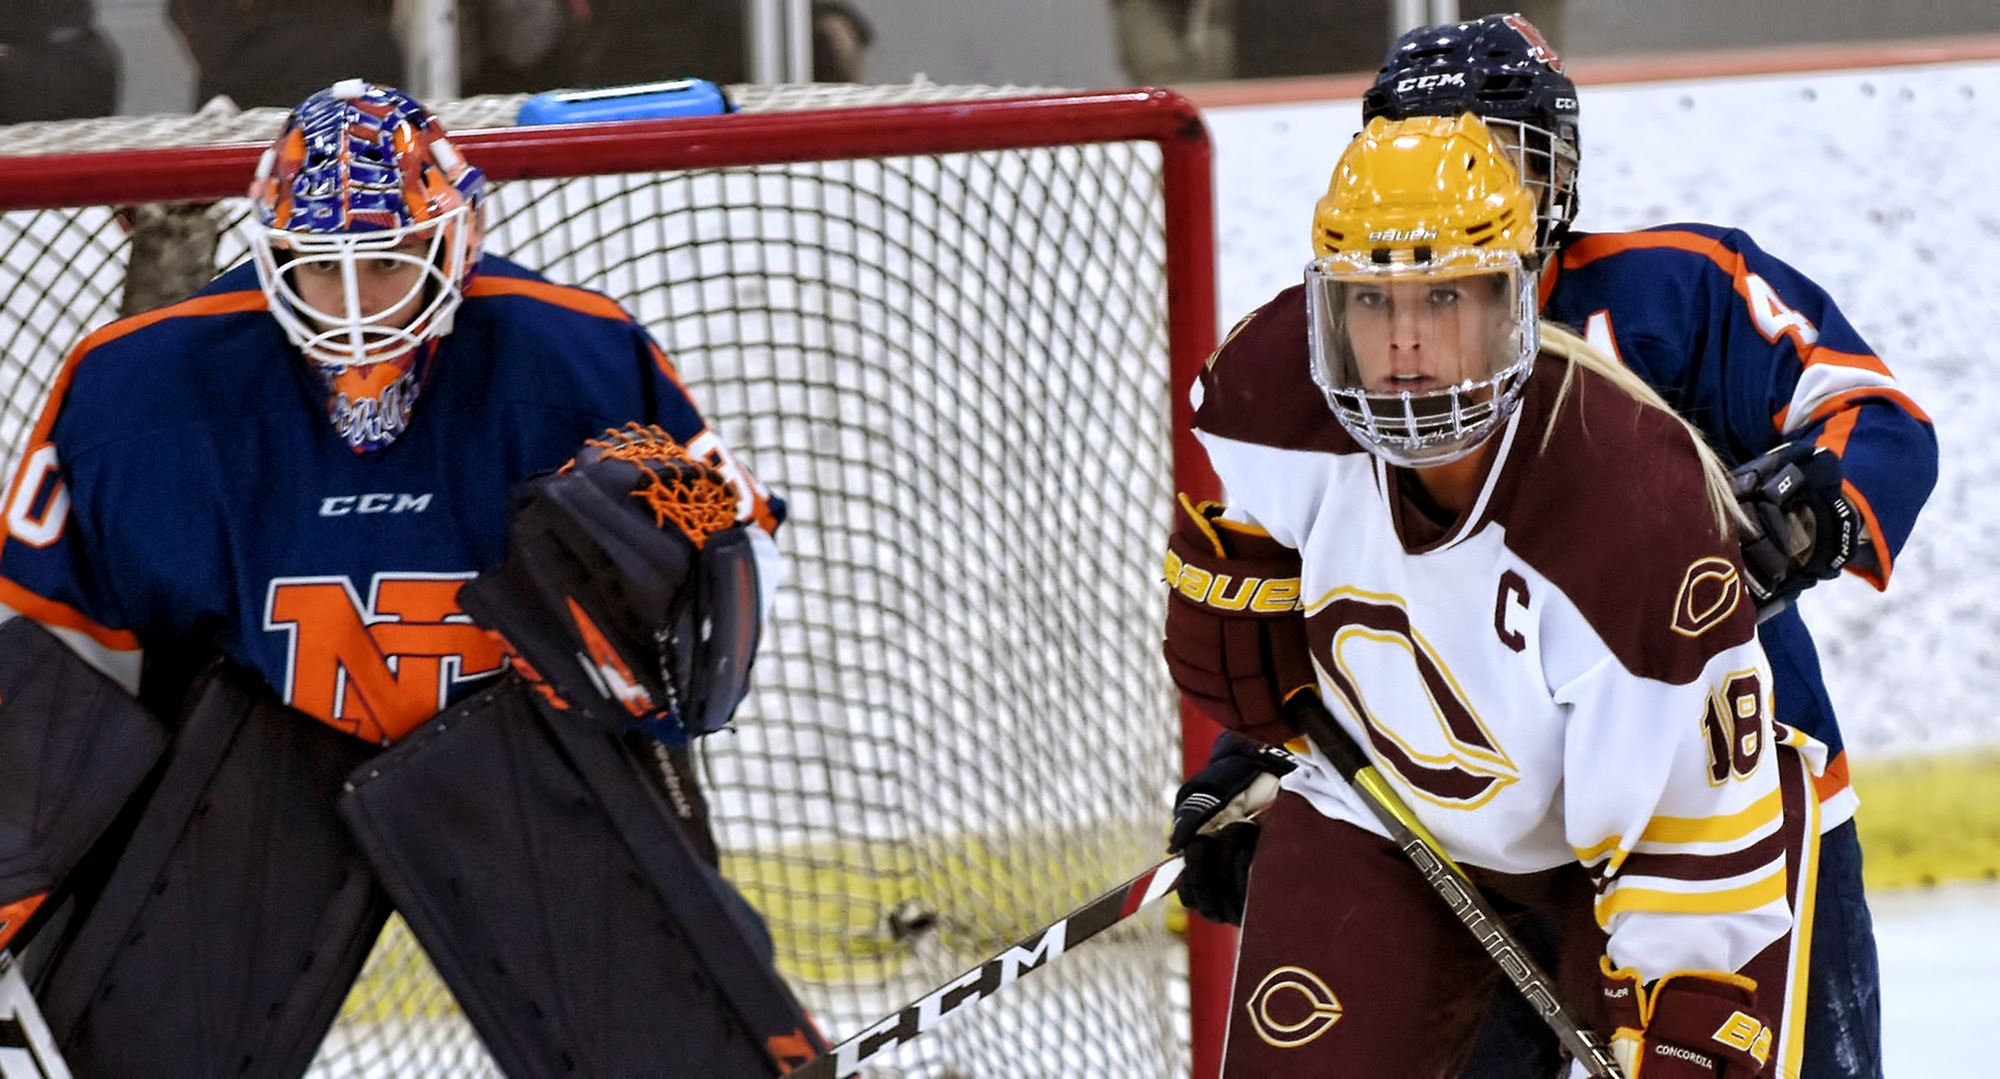 Senior captain Ally Wiitala camps in front of the Northland goal during the first period of the Cobbers' OT win. Wiitala scored the game winner.